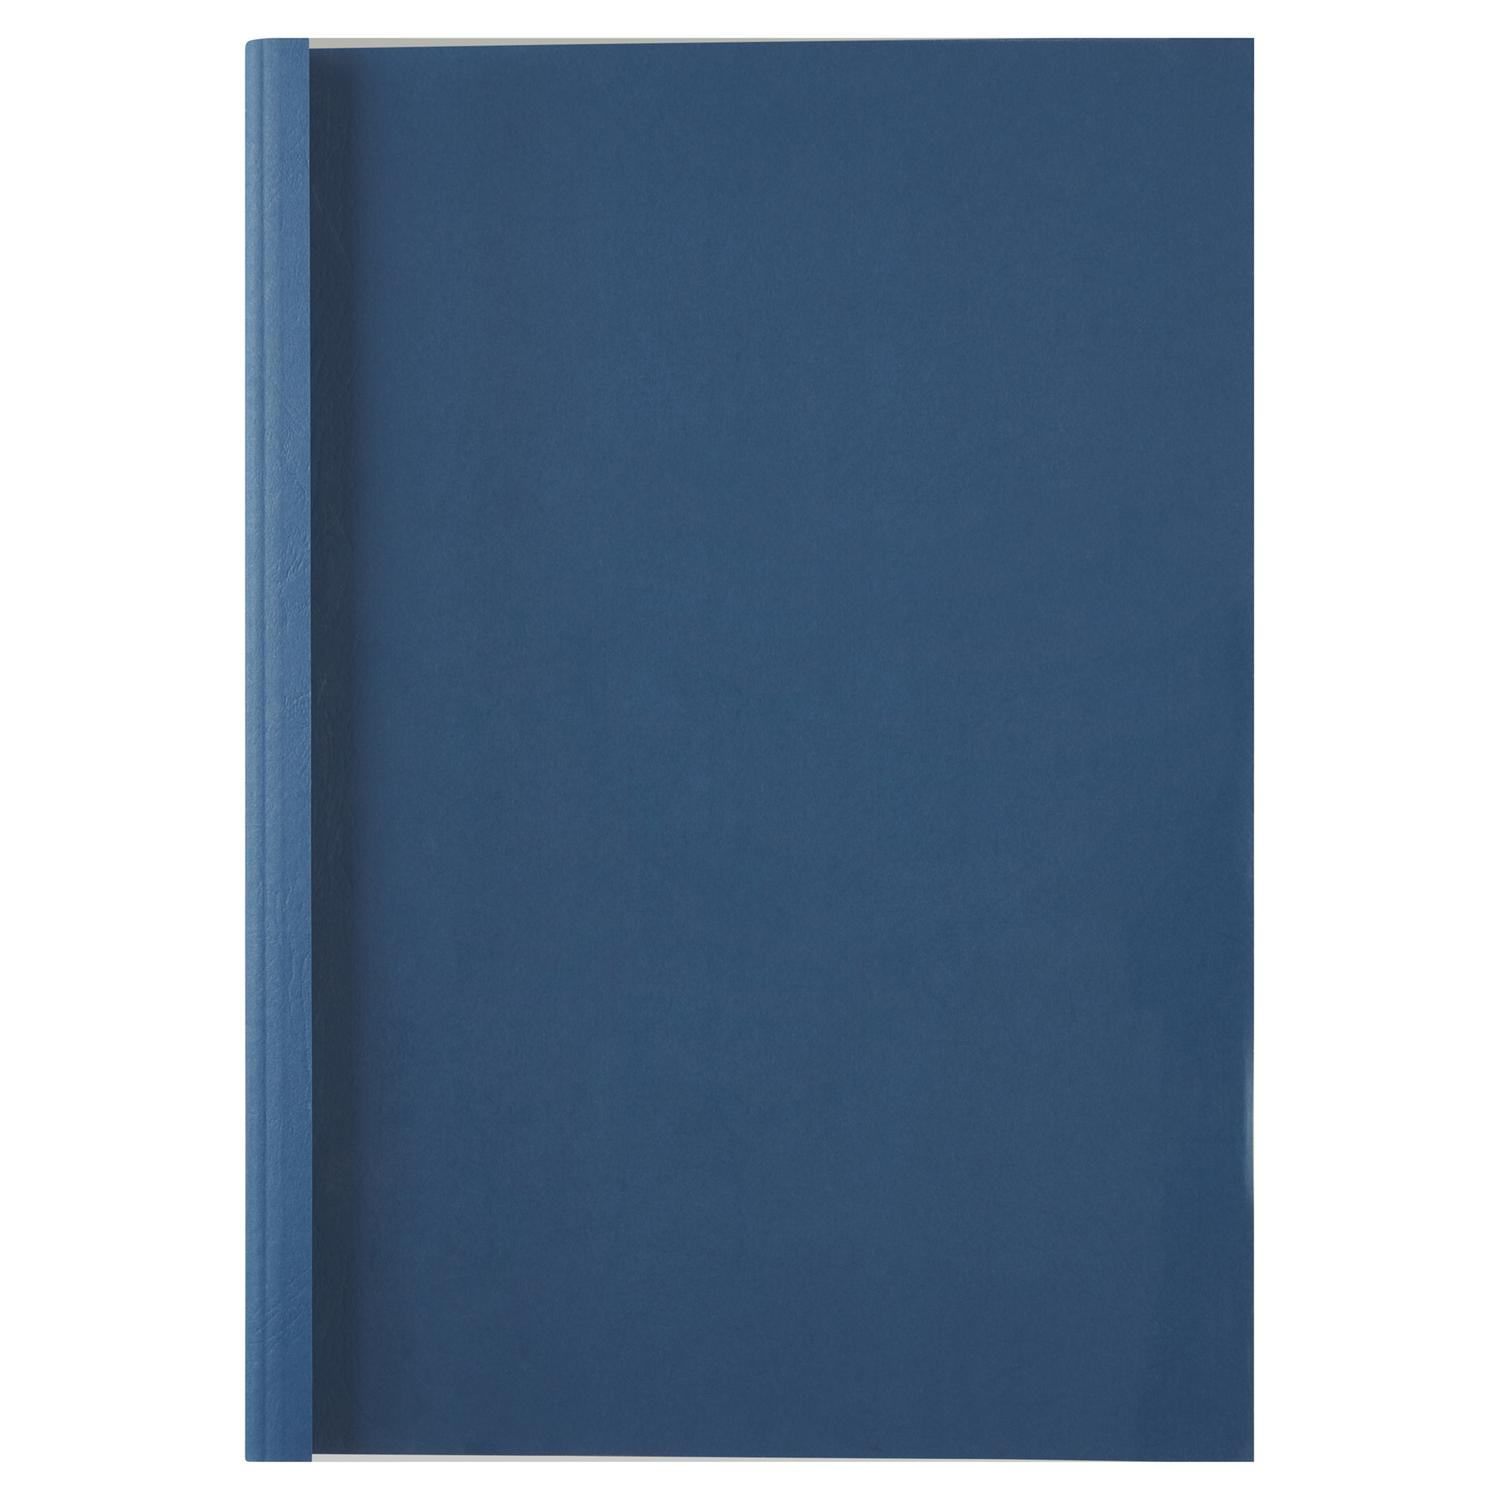 Thermal Bind Covers GBC A4 Thermal Binding Covers 1.5mm Leather Royal Blue PK100